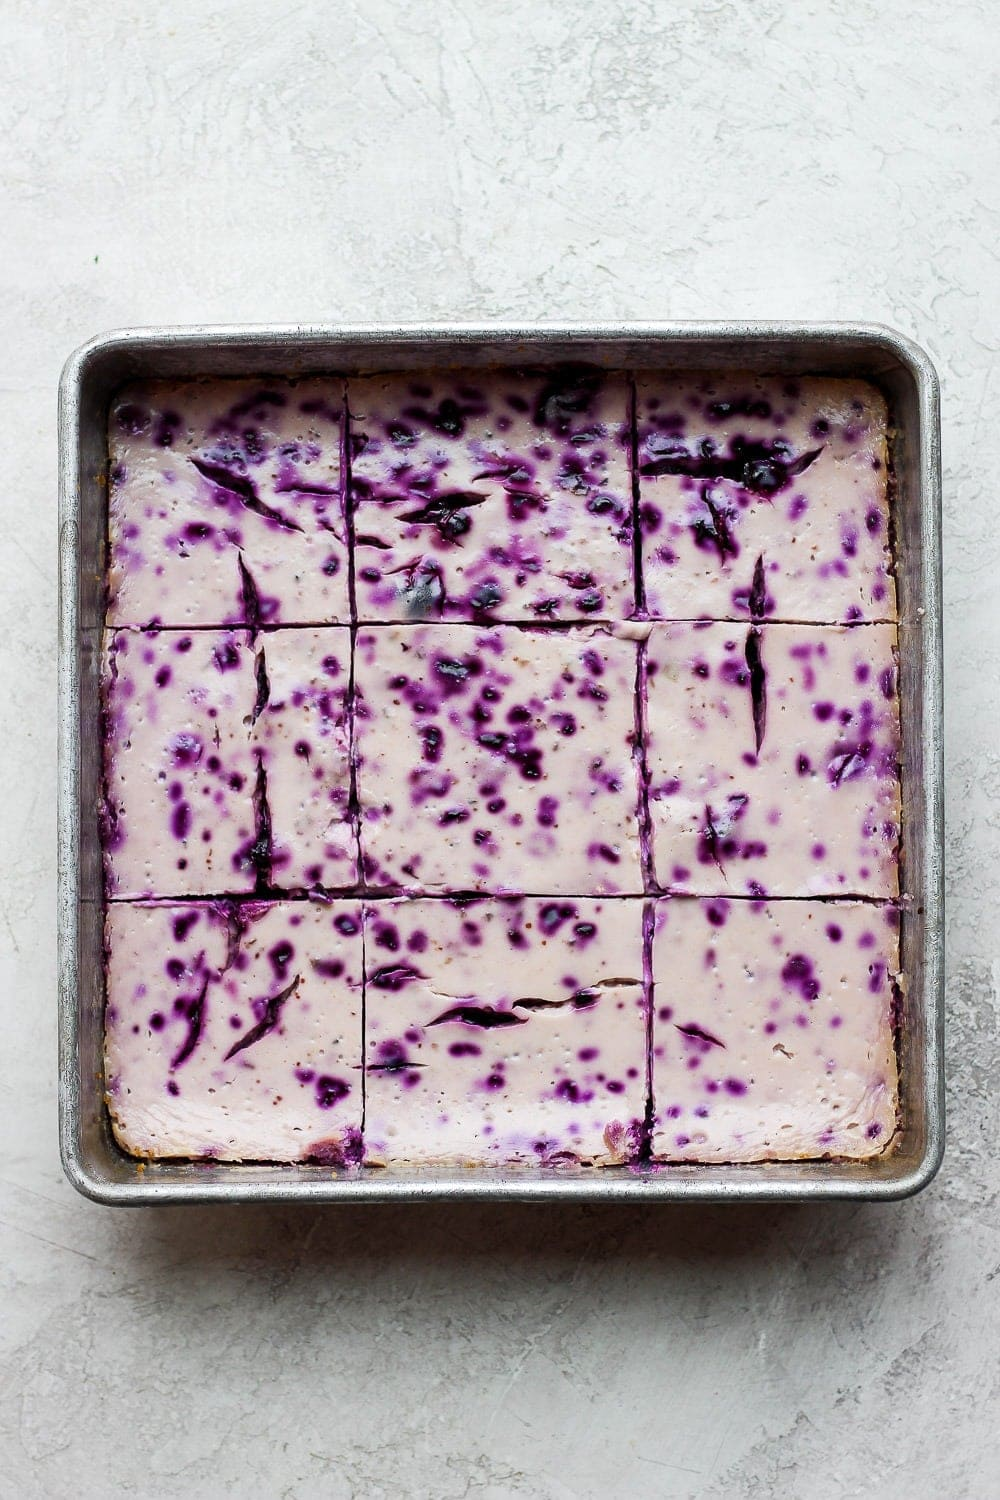 blueberry cheesecake bars after baking in a square baking dish